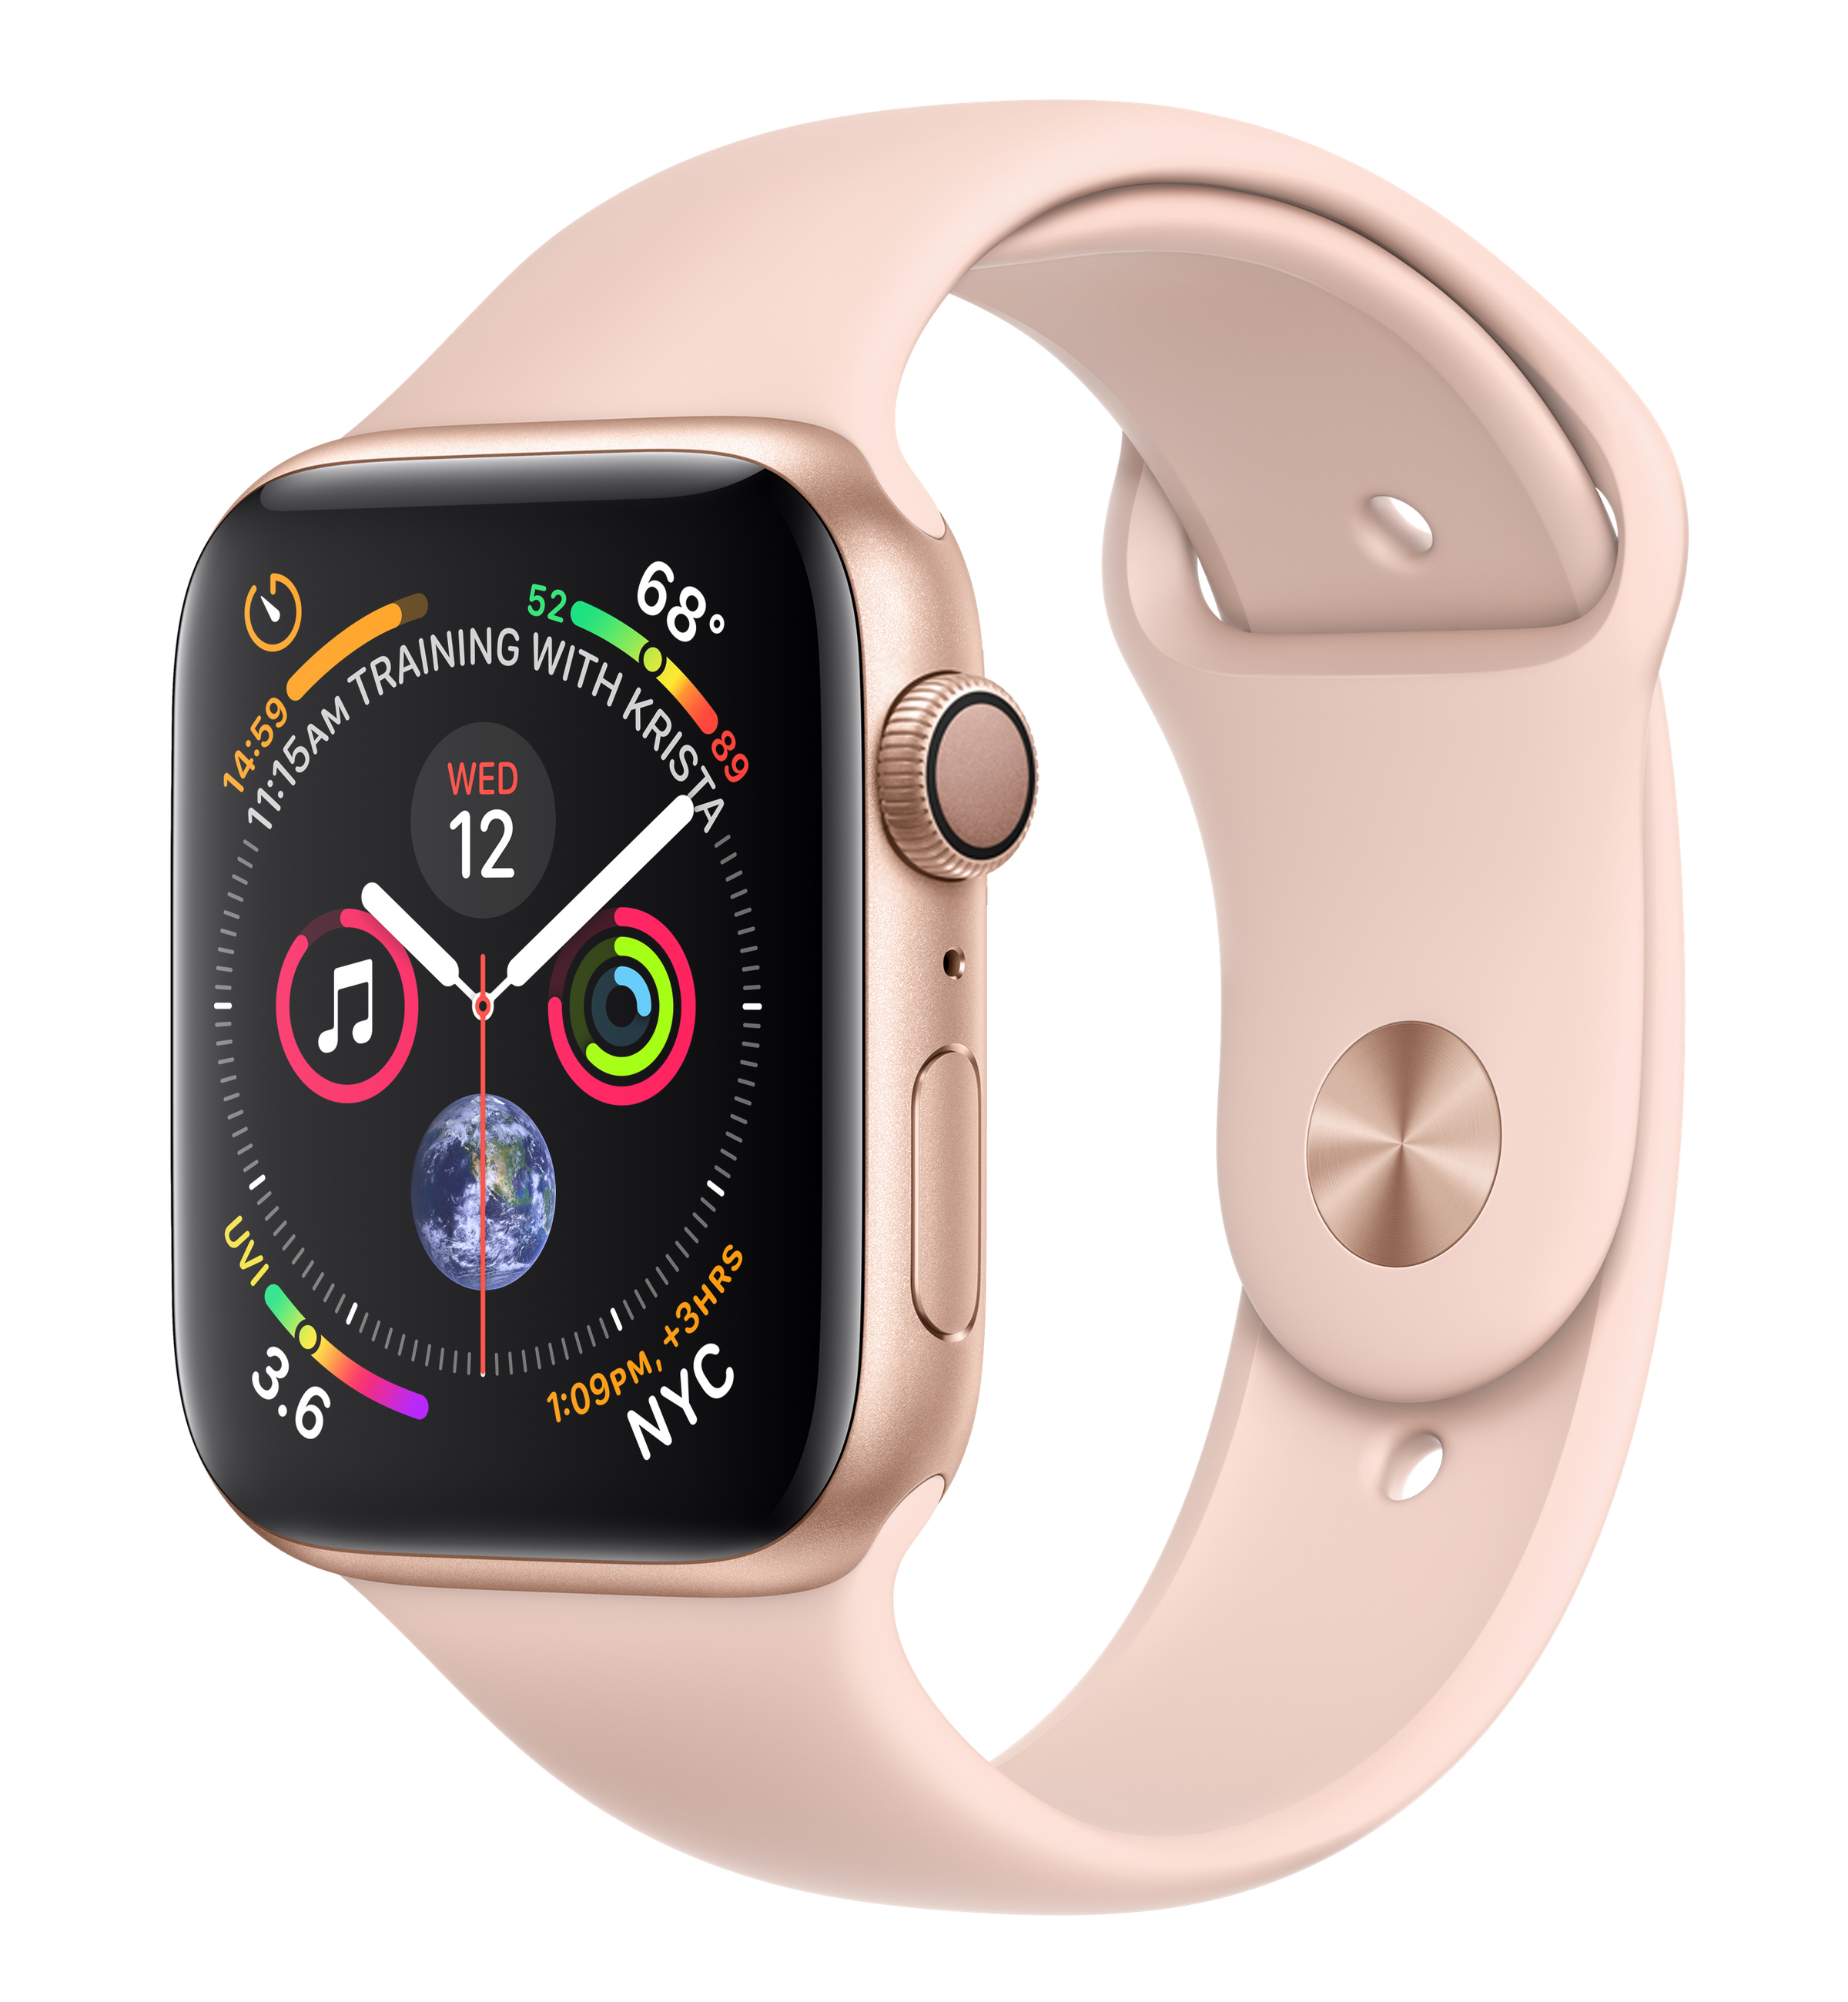 Apple Watch Series 4 44mm Aluminium Gold Pink Sport Band MU6F2 Πληρωμή έως 24 δόσεις